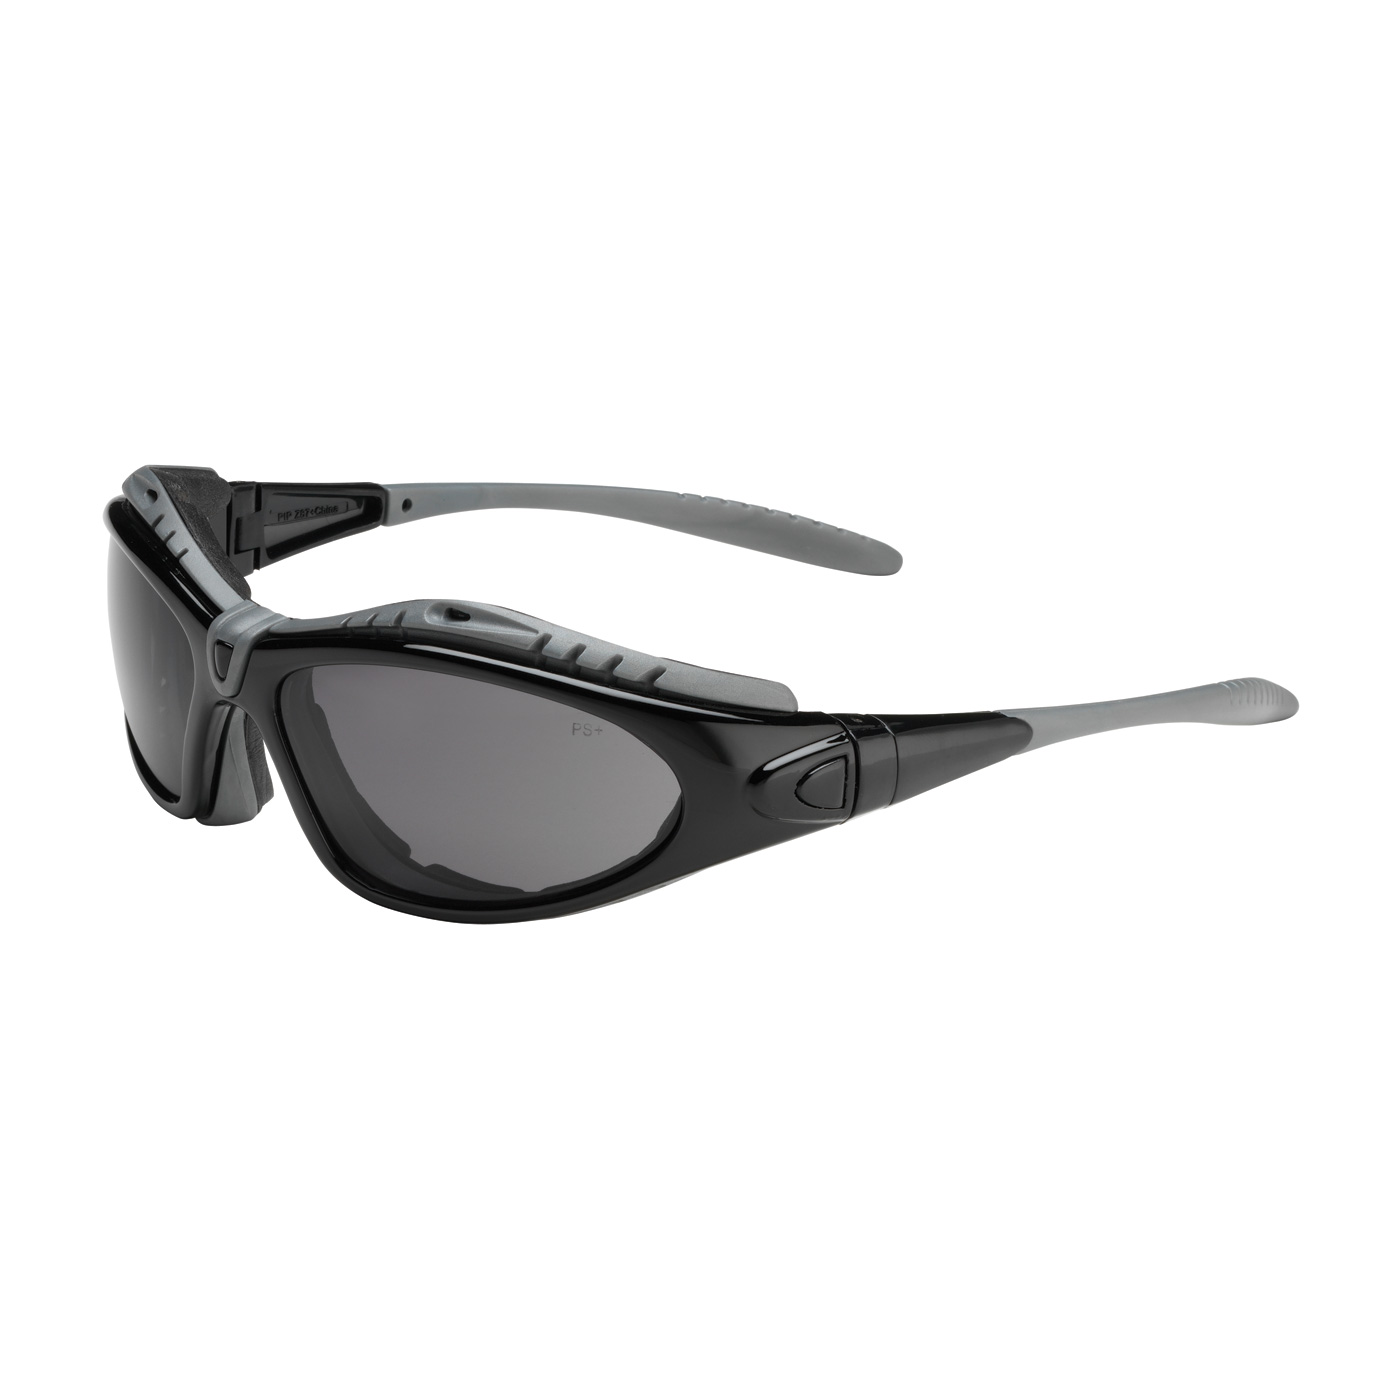 PIPR 250-50-0520 Full Frame Safety Glasses with Black Frame, Foam Padding, Clear Lens and Anti-Scratch / FogLess 3Sixty Coating